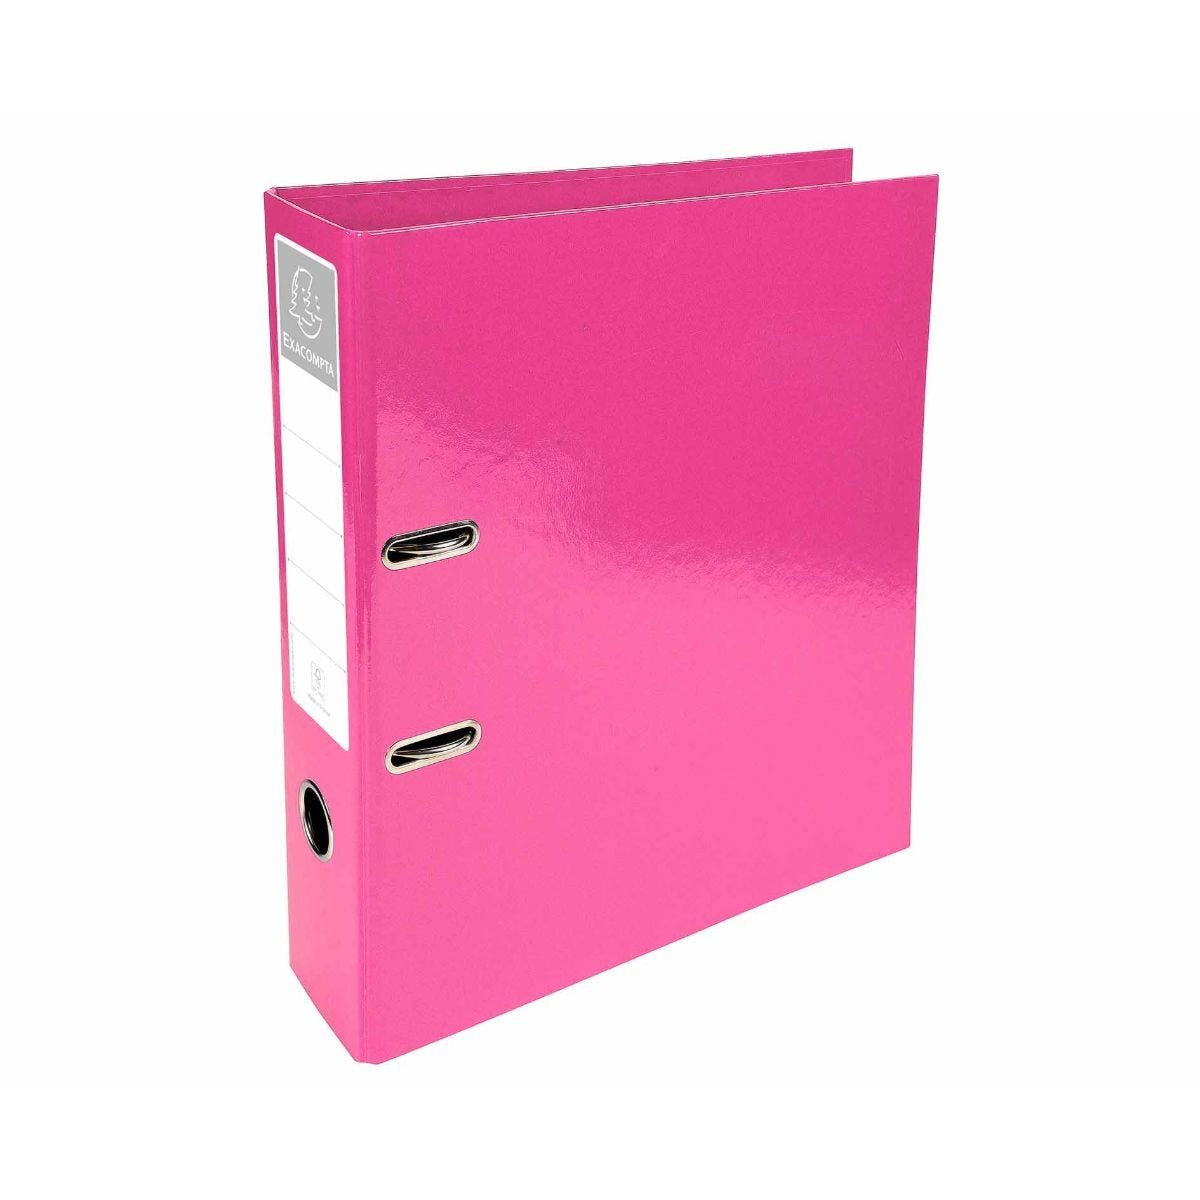 Exacompta Iderama PremTouch Lever Arch File A4 70mm Pack of 10 Pink